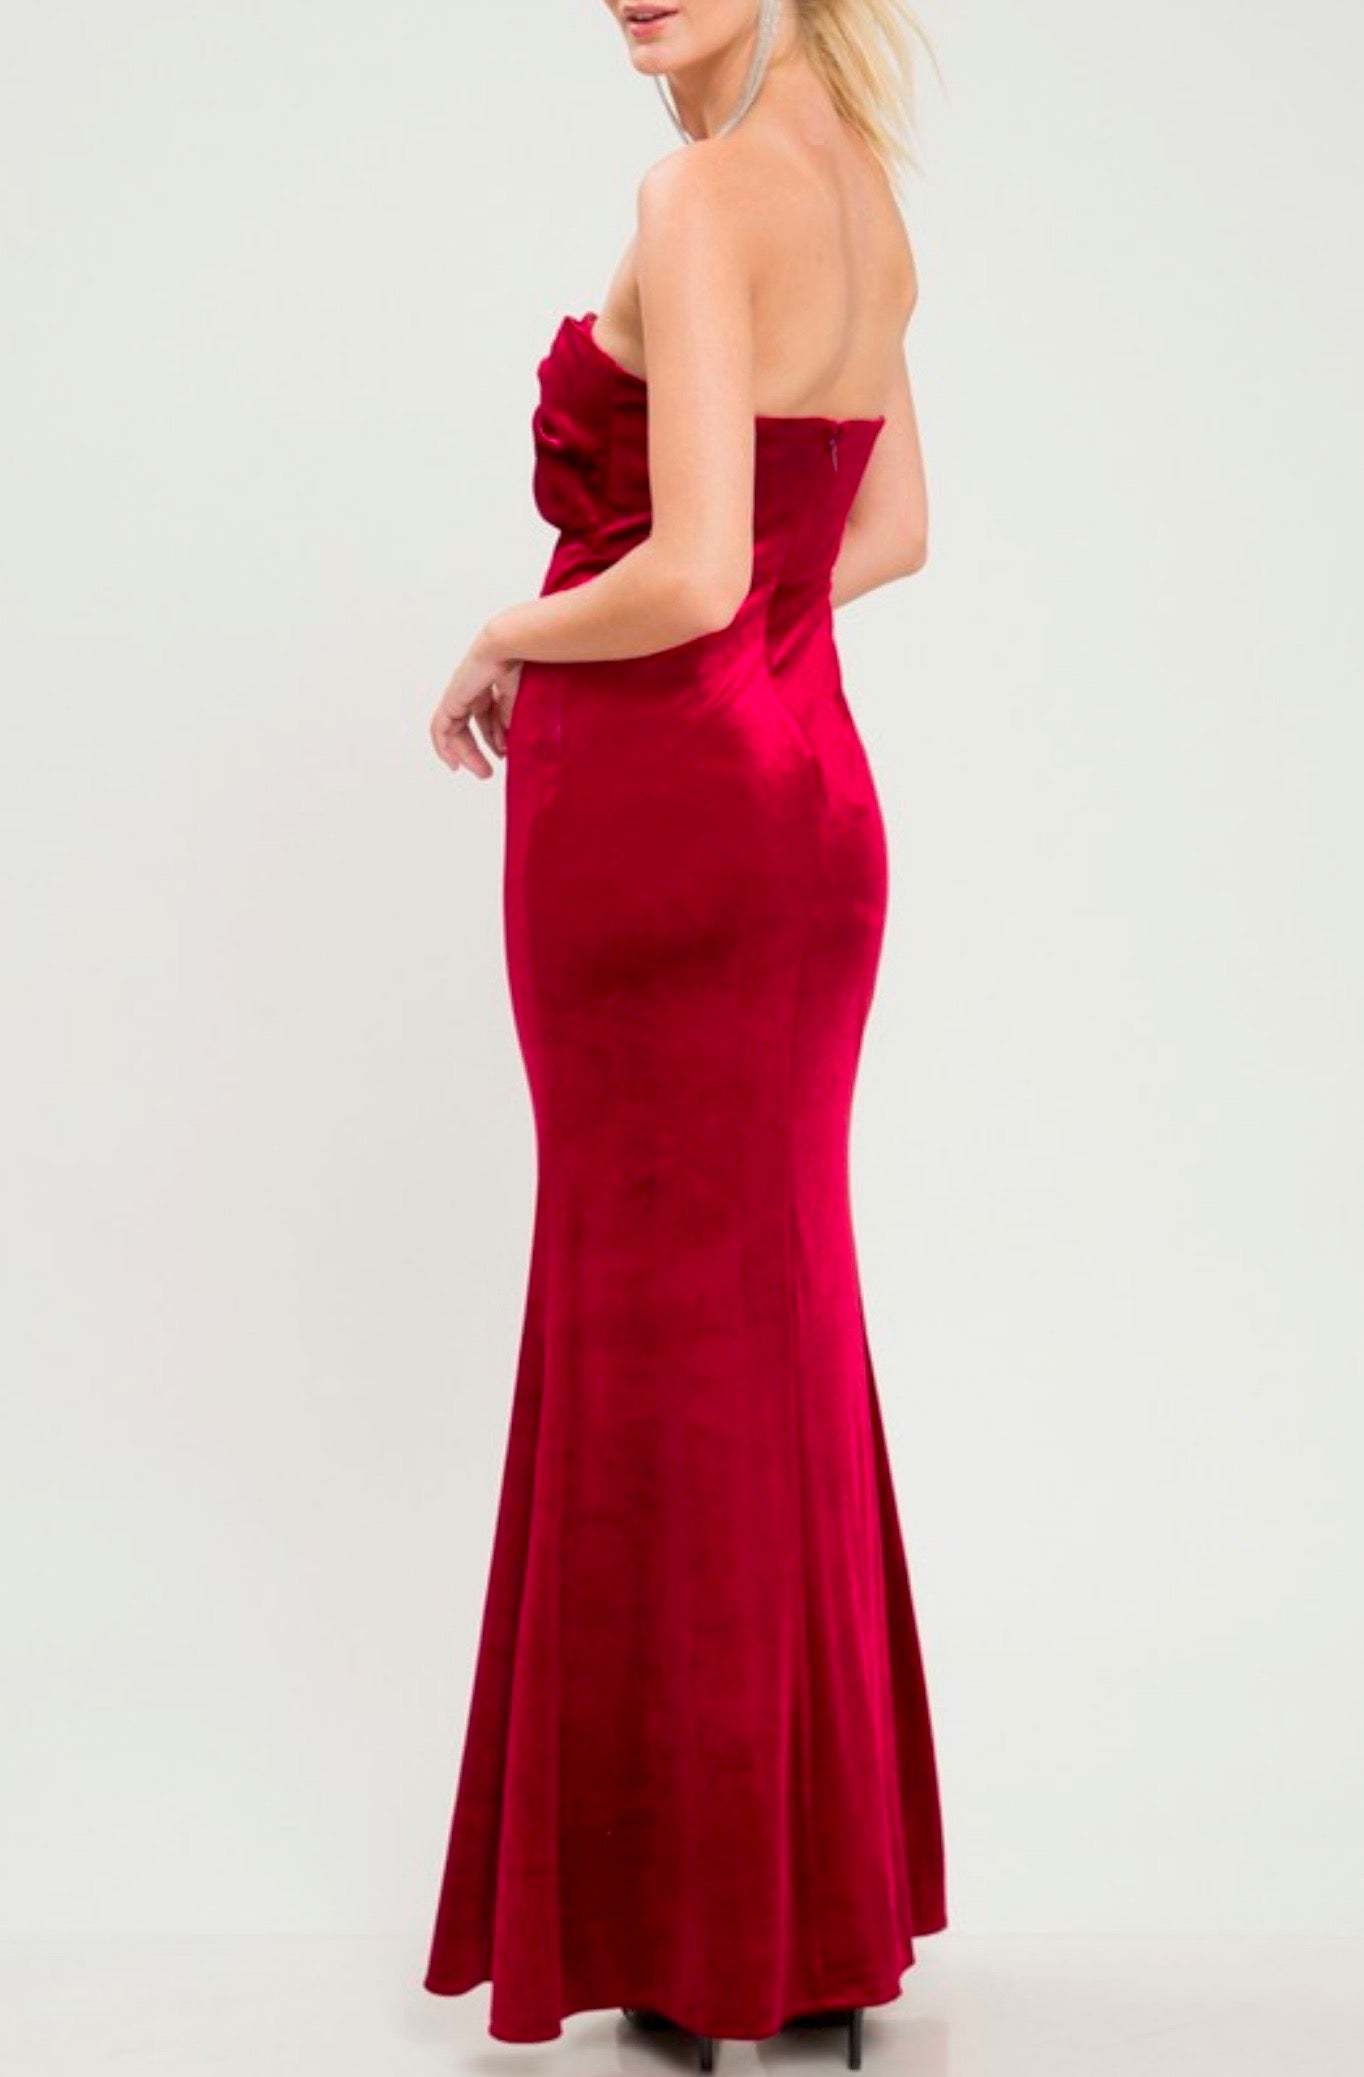 7b165da3db8e twist front strapless velvet maxi dress with thigh high slit - burgundy